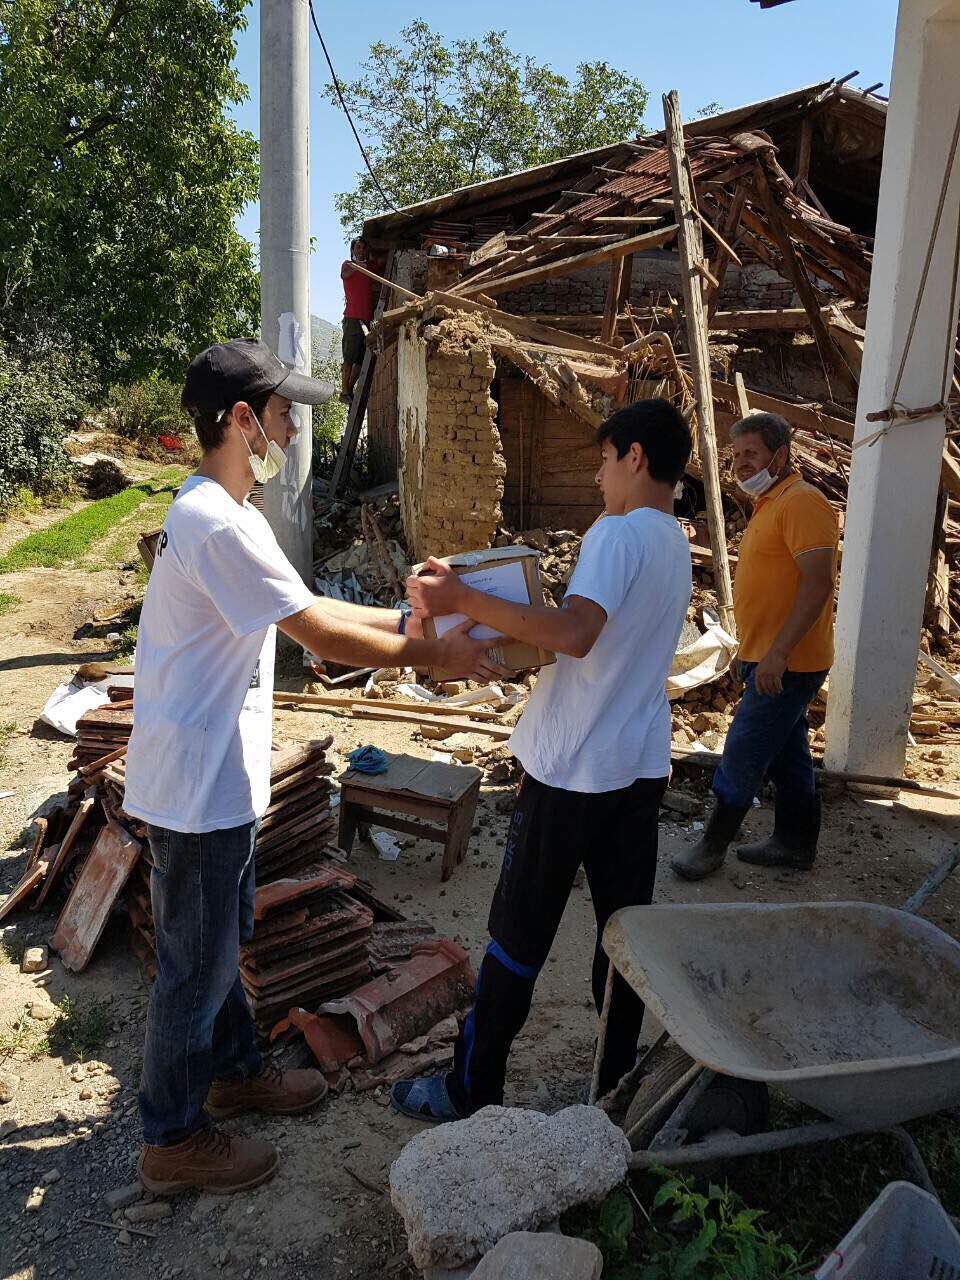 Volunteer distributing hygiene relief kit in Macedonia village. Credit: American Jewish Joint Distribution Committee